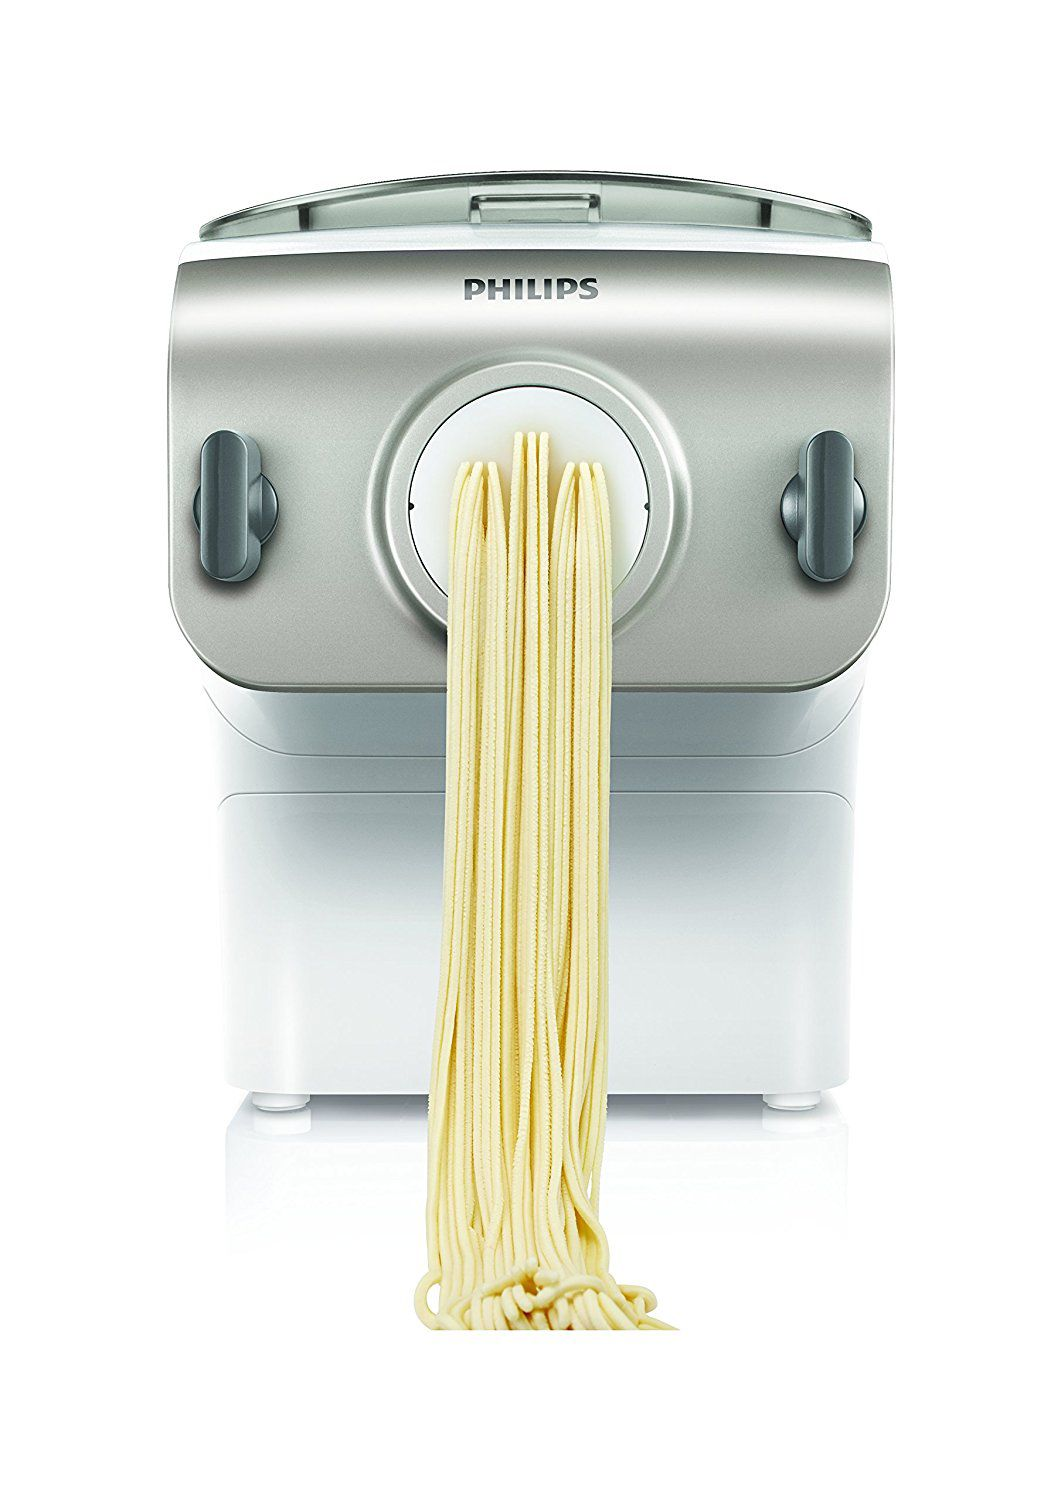 philips pasta maker avance collection best offer reviews. Black Bedroom Furniture Sets. Home Design Ideas